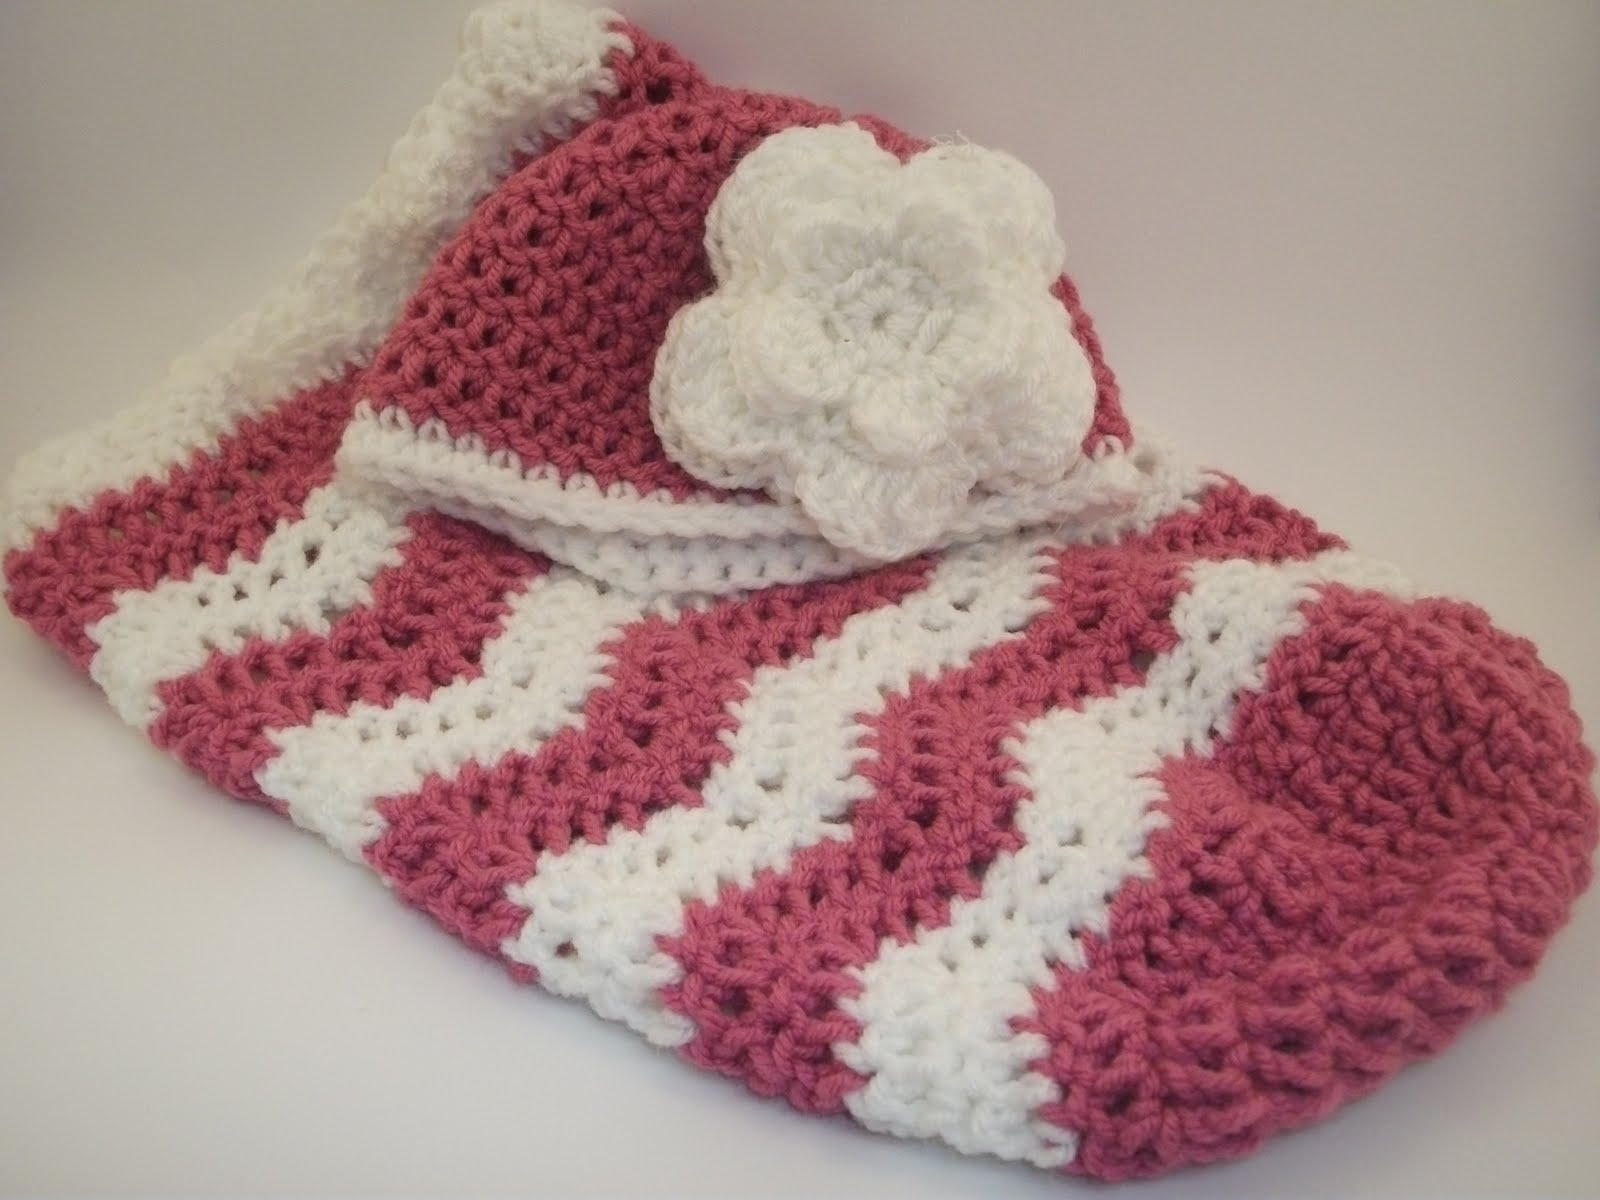 Crochet Patterns For Baby Cocoons Free : Crochet Baby Cocoon Pattern Patterns Gallery